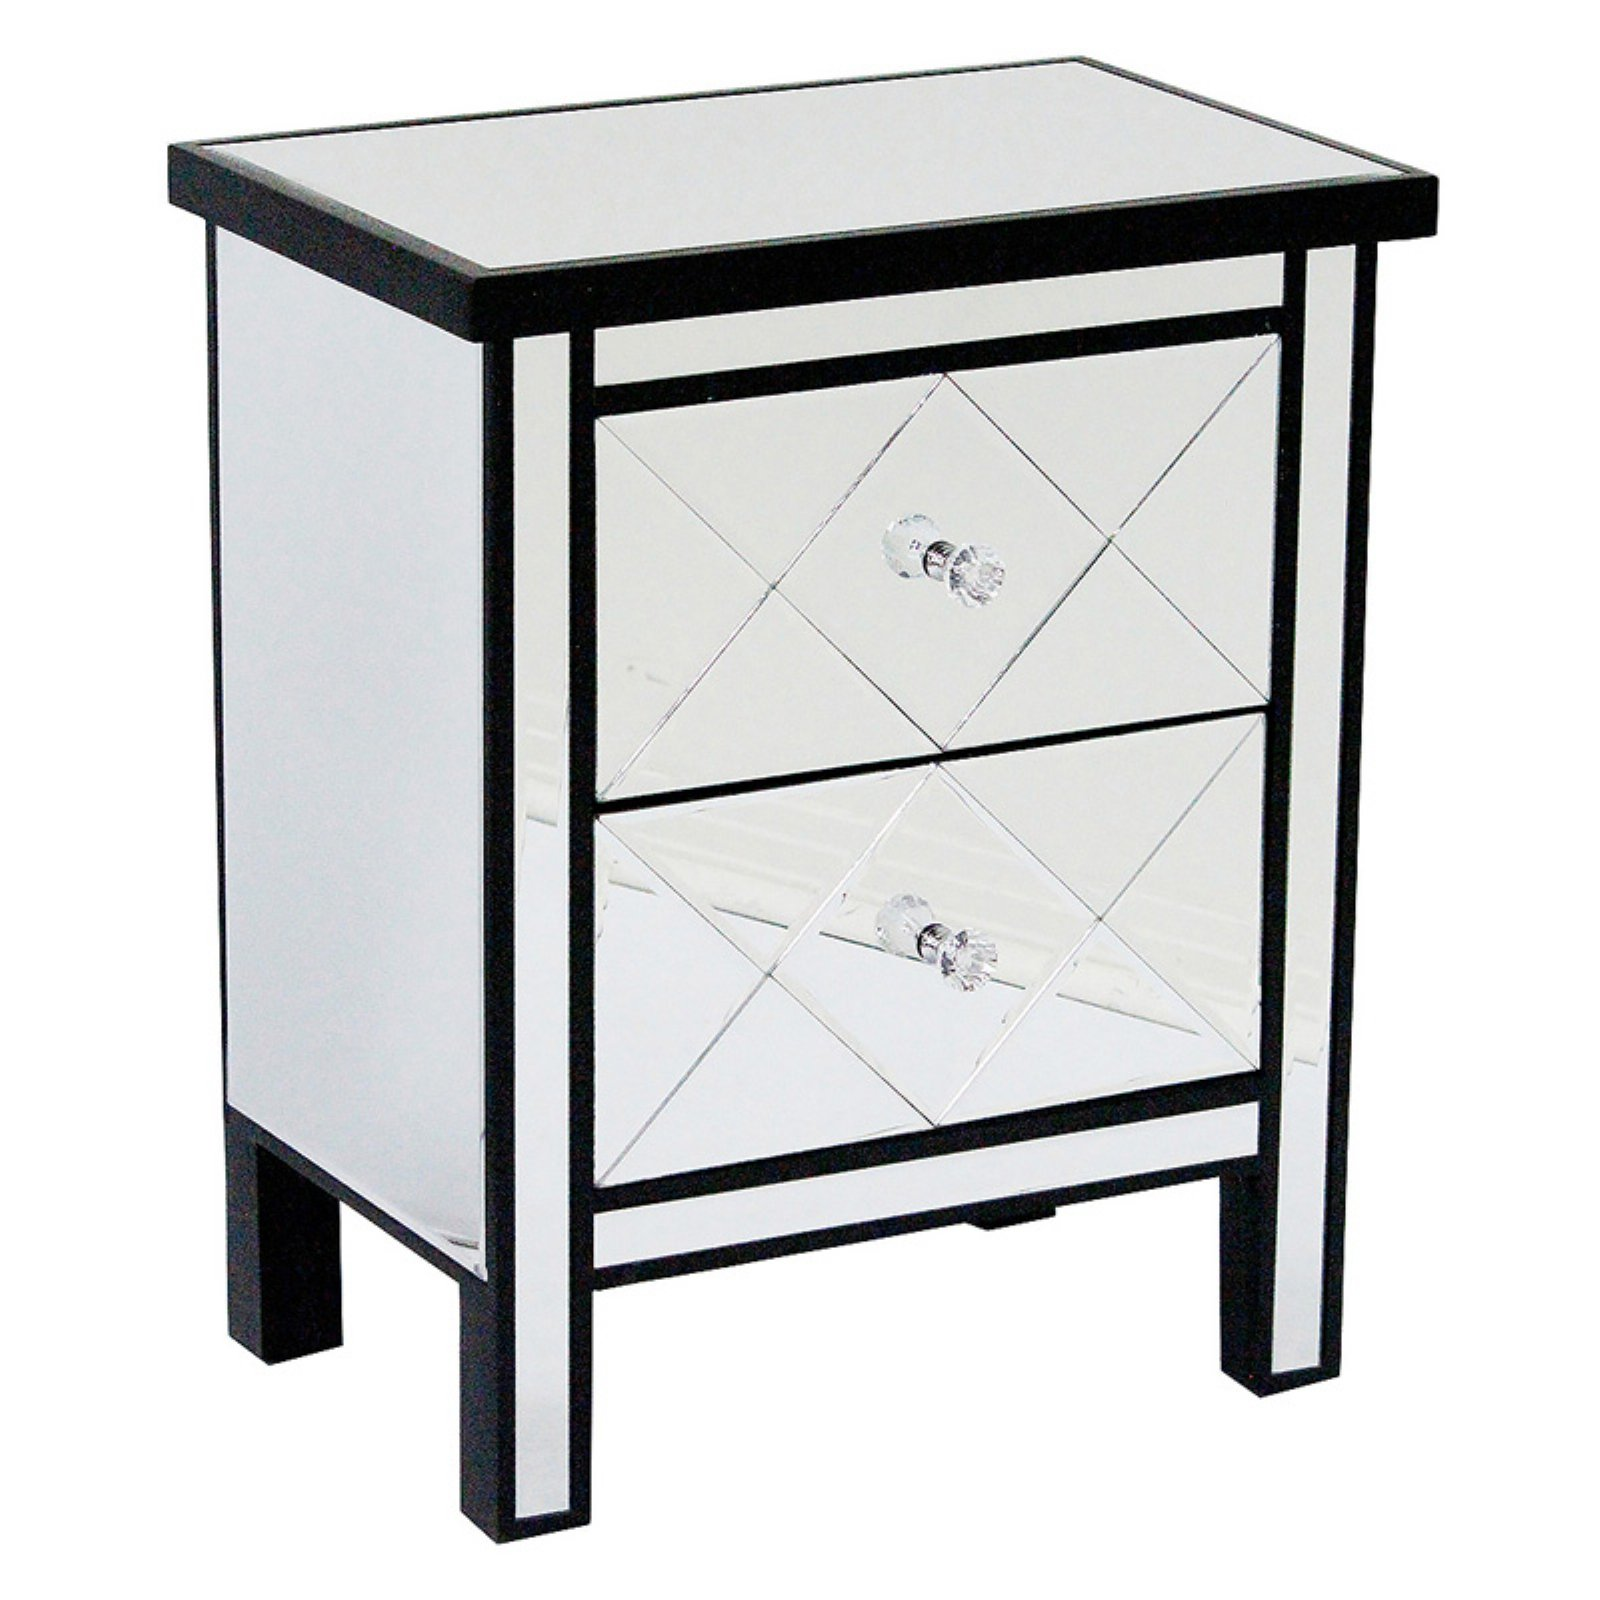 Heather Ann Creations Emmy 2 Drawer Mirrored Tall Accent Cabinet